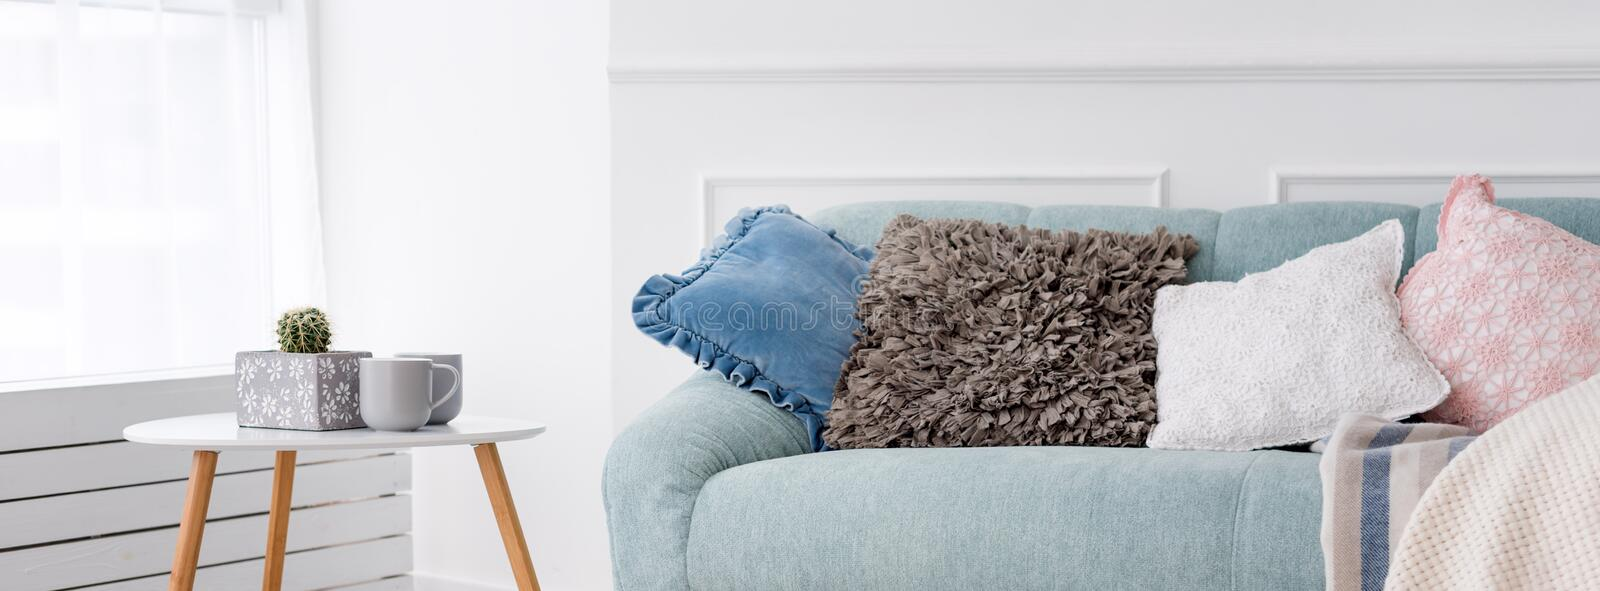 Modern wooden coffee table and cozy sofa with pillows. Living room interior and simple modern home decor concept. stock images